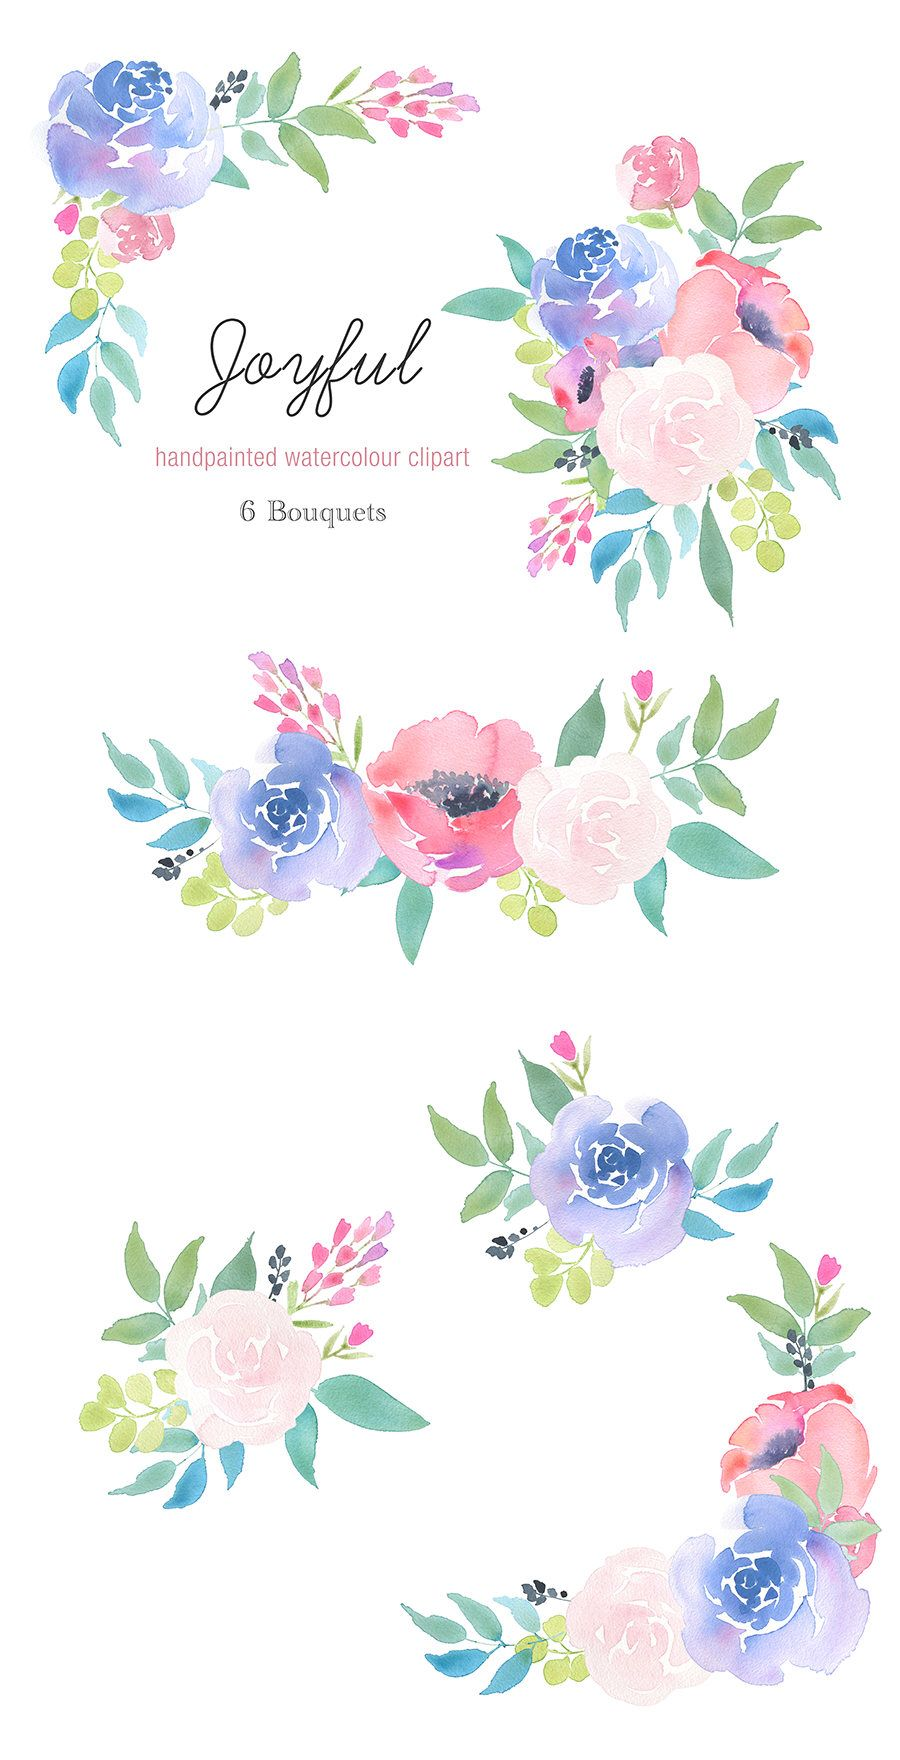 Pin by Law Carmen on Watercolour (Floral) in 2019.